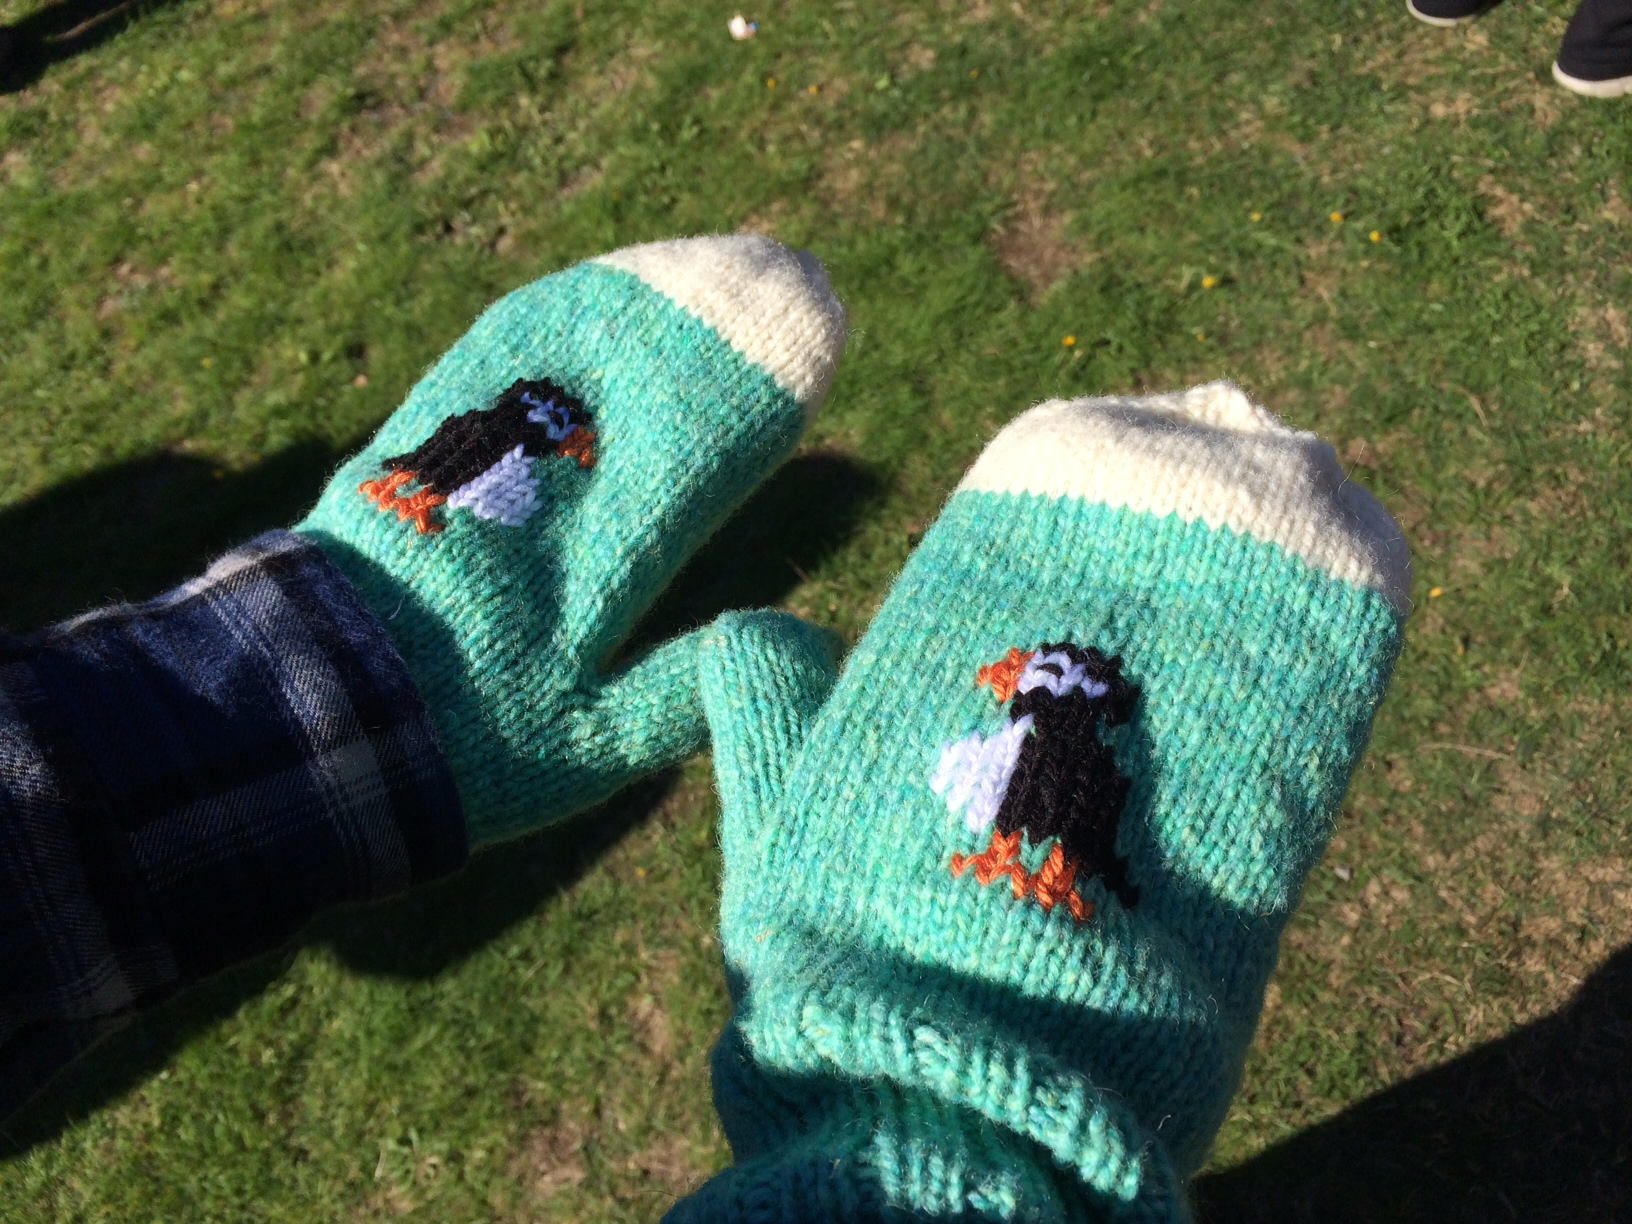 Puffin mitts!